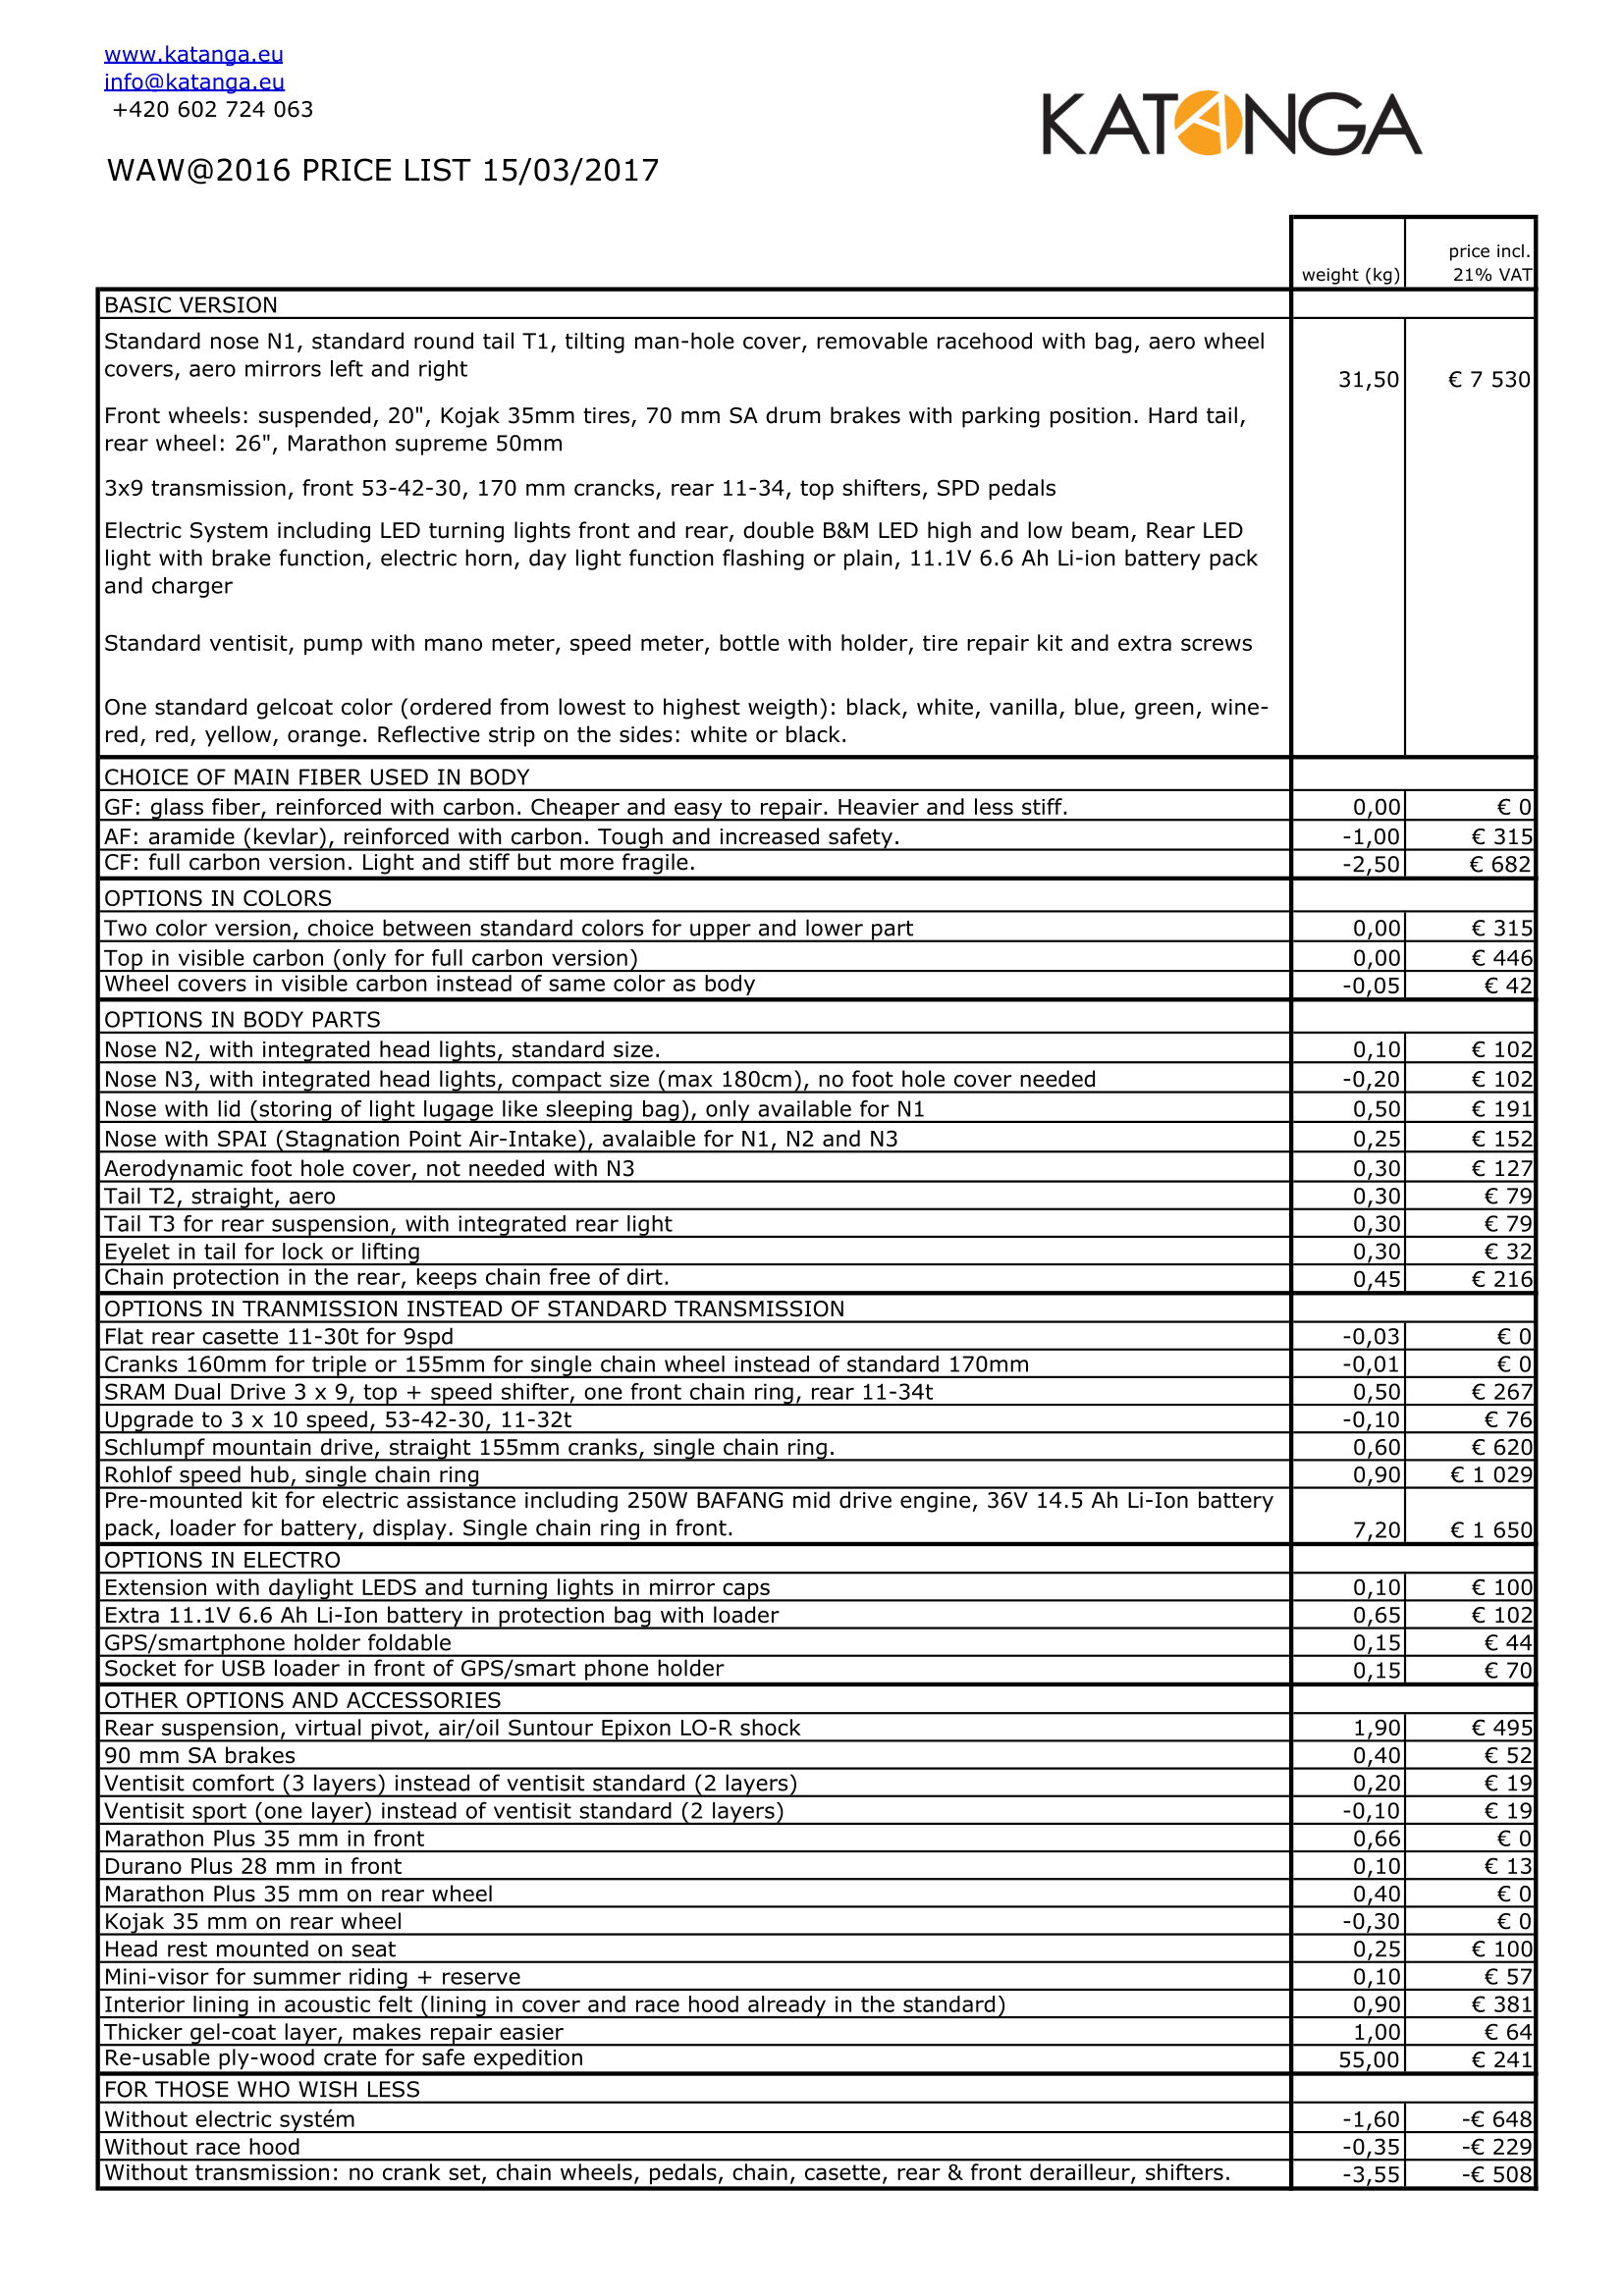 qcaoptionparts-page-001